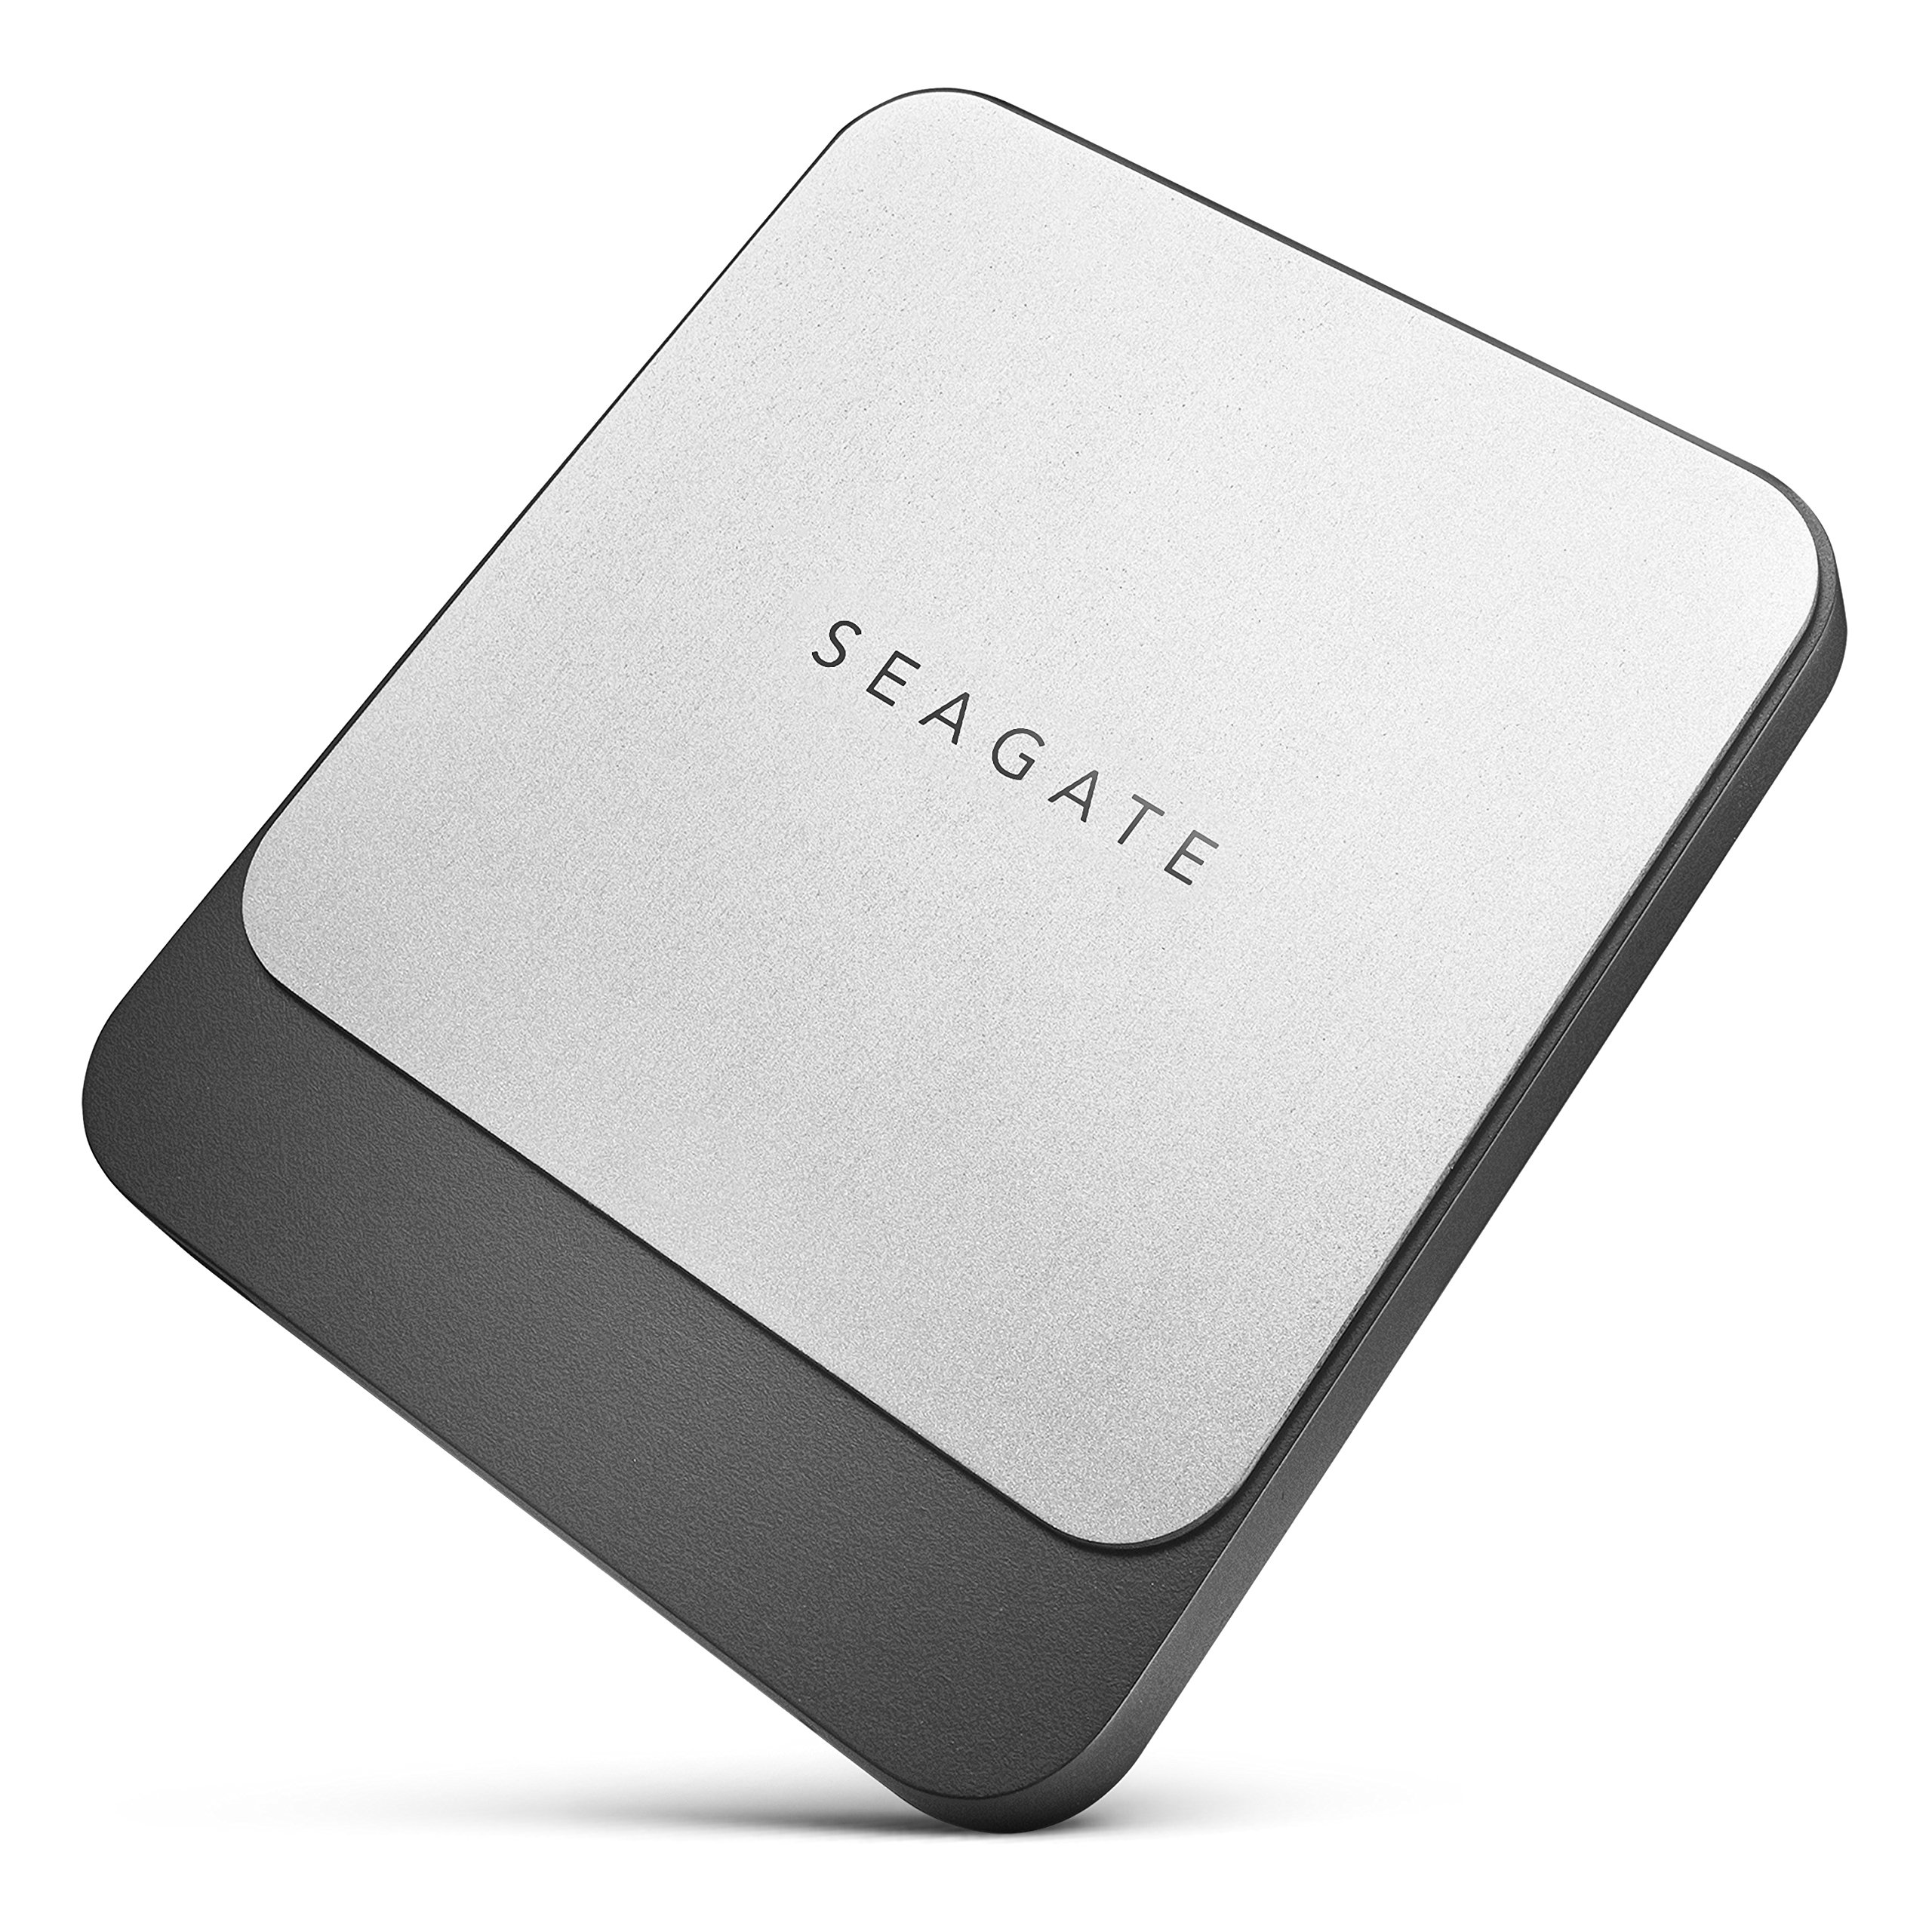 Seagate Fast SSD 500GB External Solid State Drive Portable - USB-C USB 3.0 for PC Laptop and Mac, 2 Months Adobe CC Photography (STCM500400) by Seagate